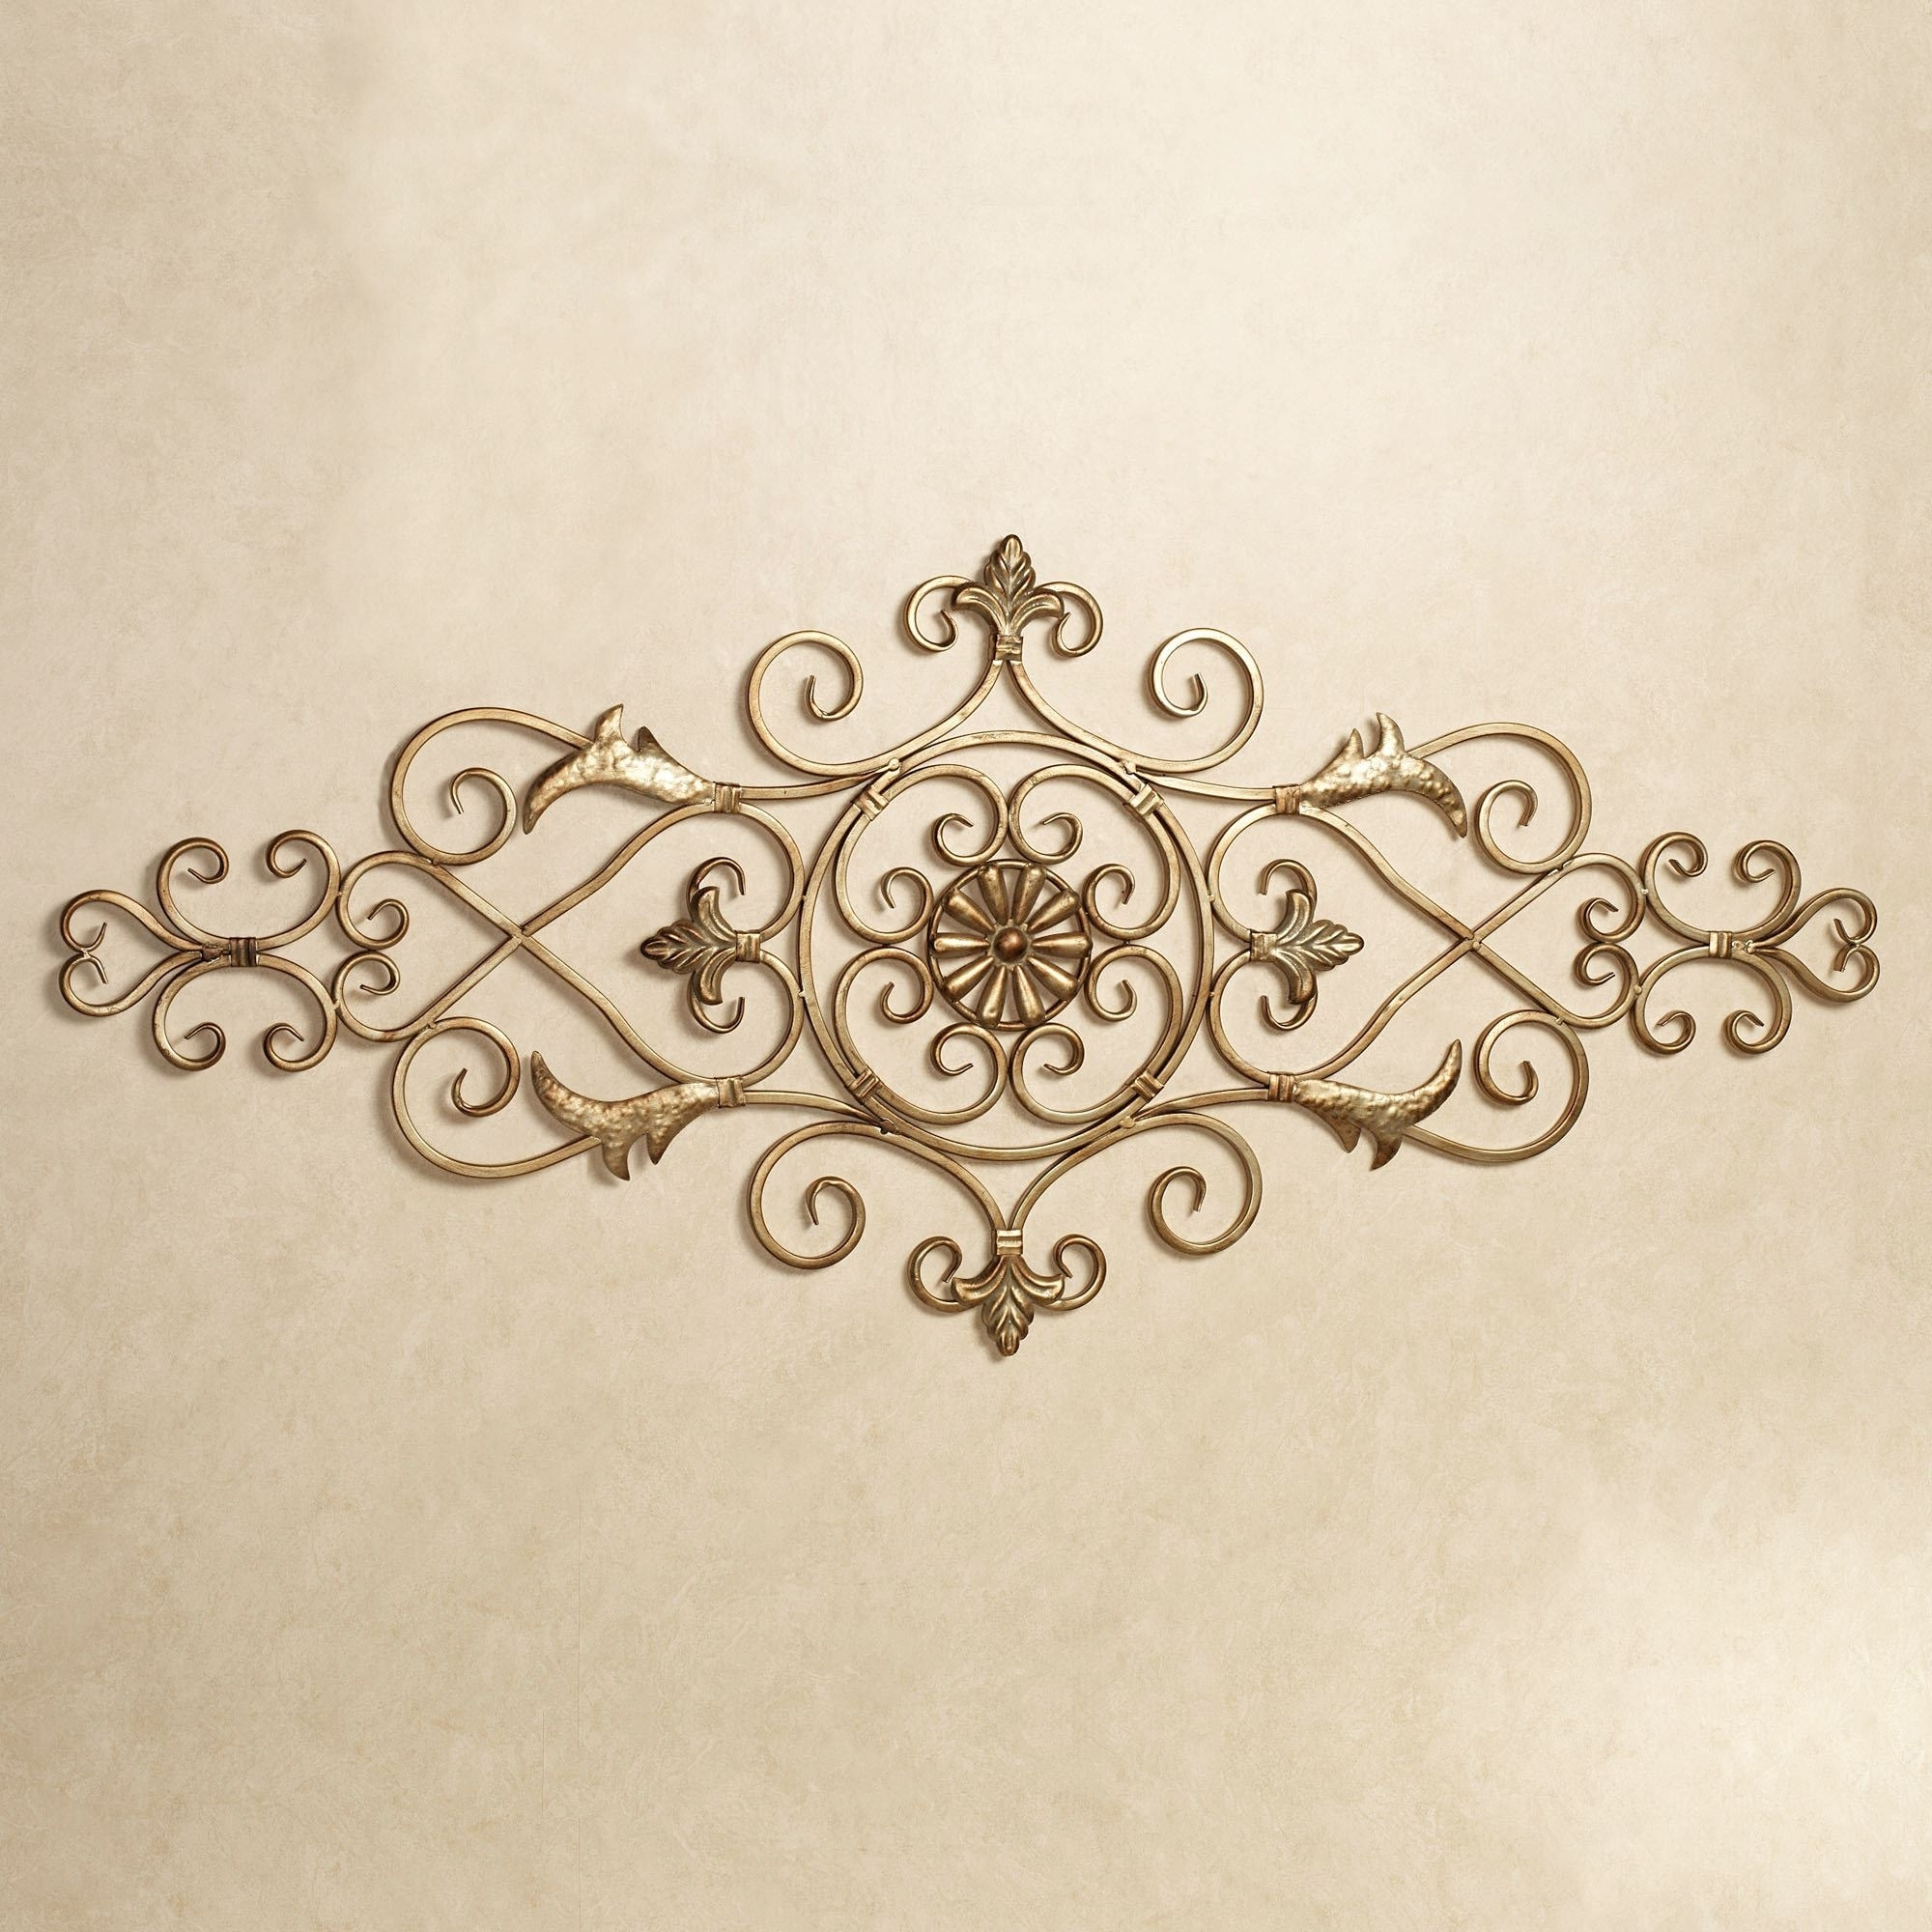 Merano Scrolling Metal Wall Grille Regarding Most Popular Gold Wall Accents (View 9 of 15)